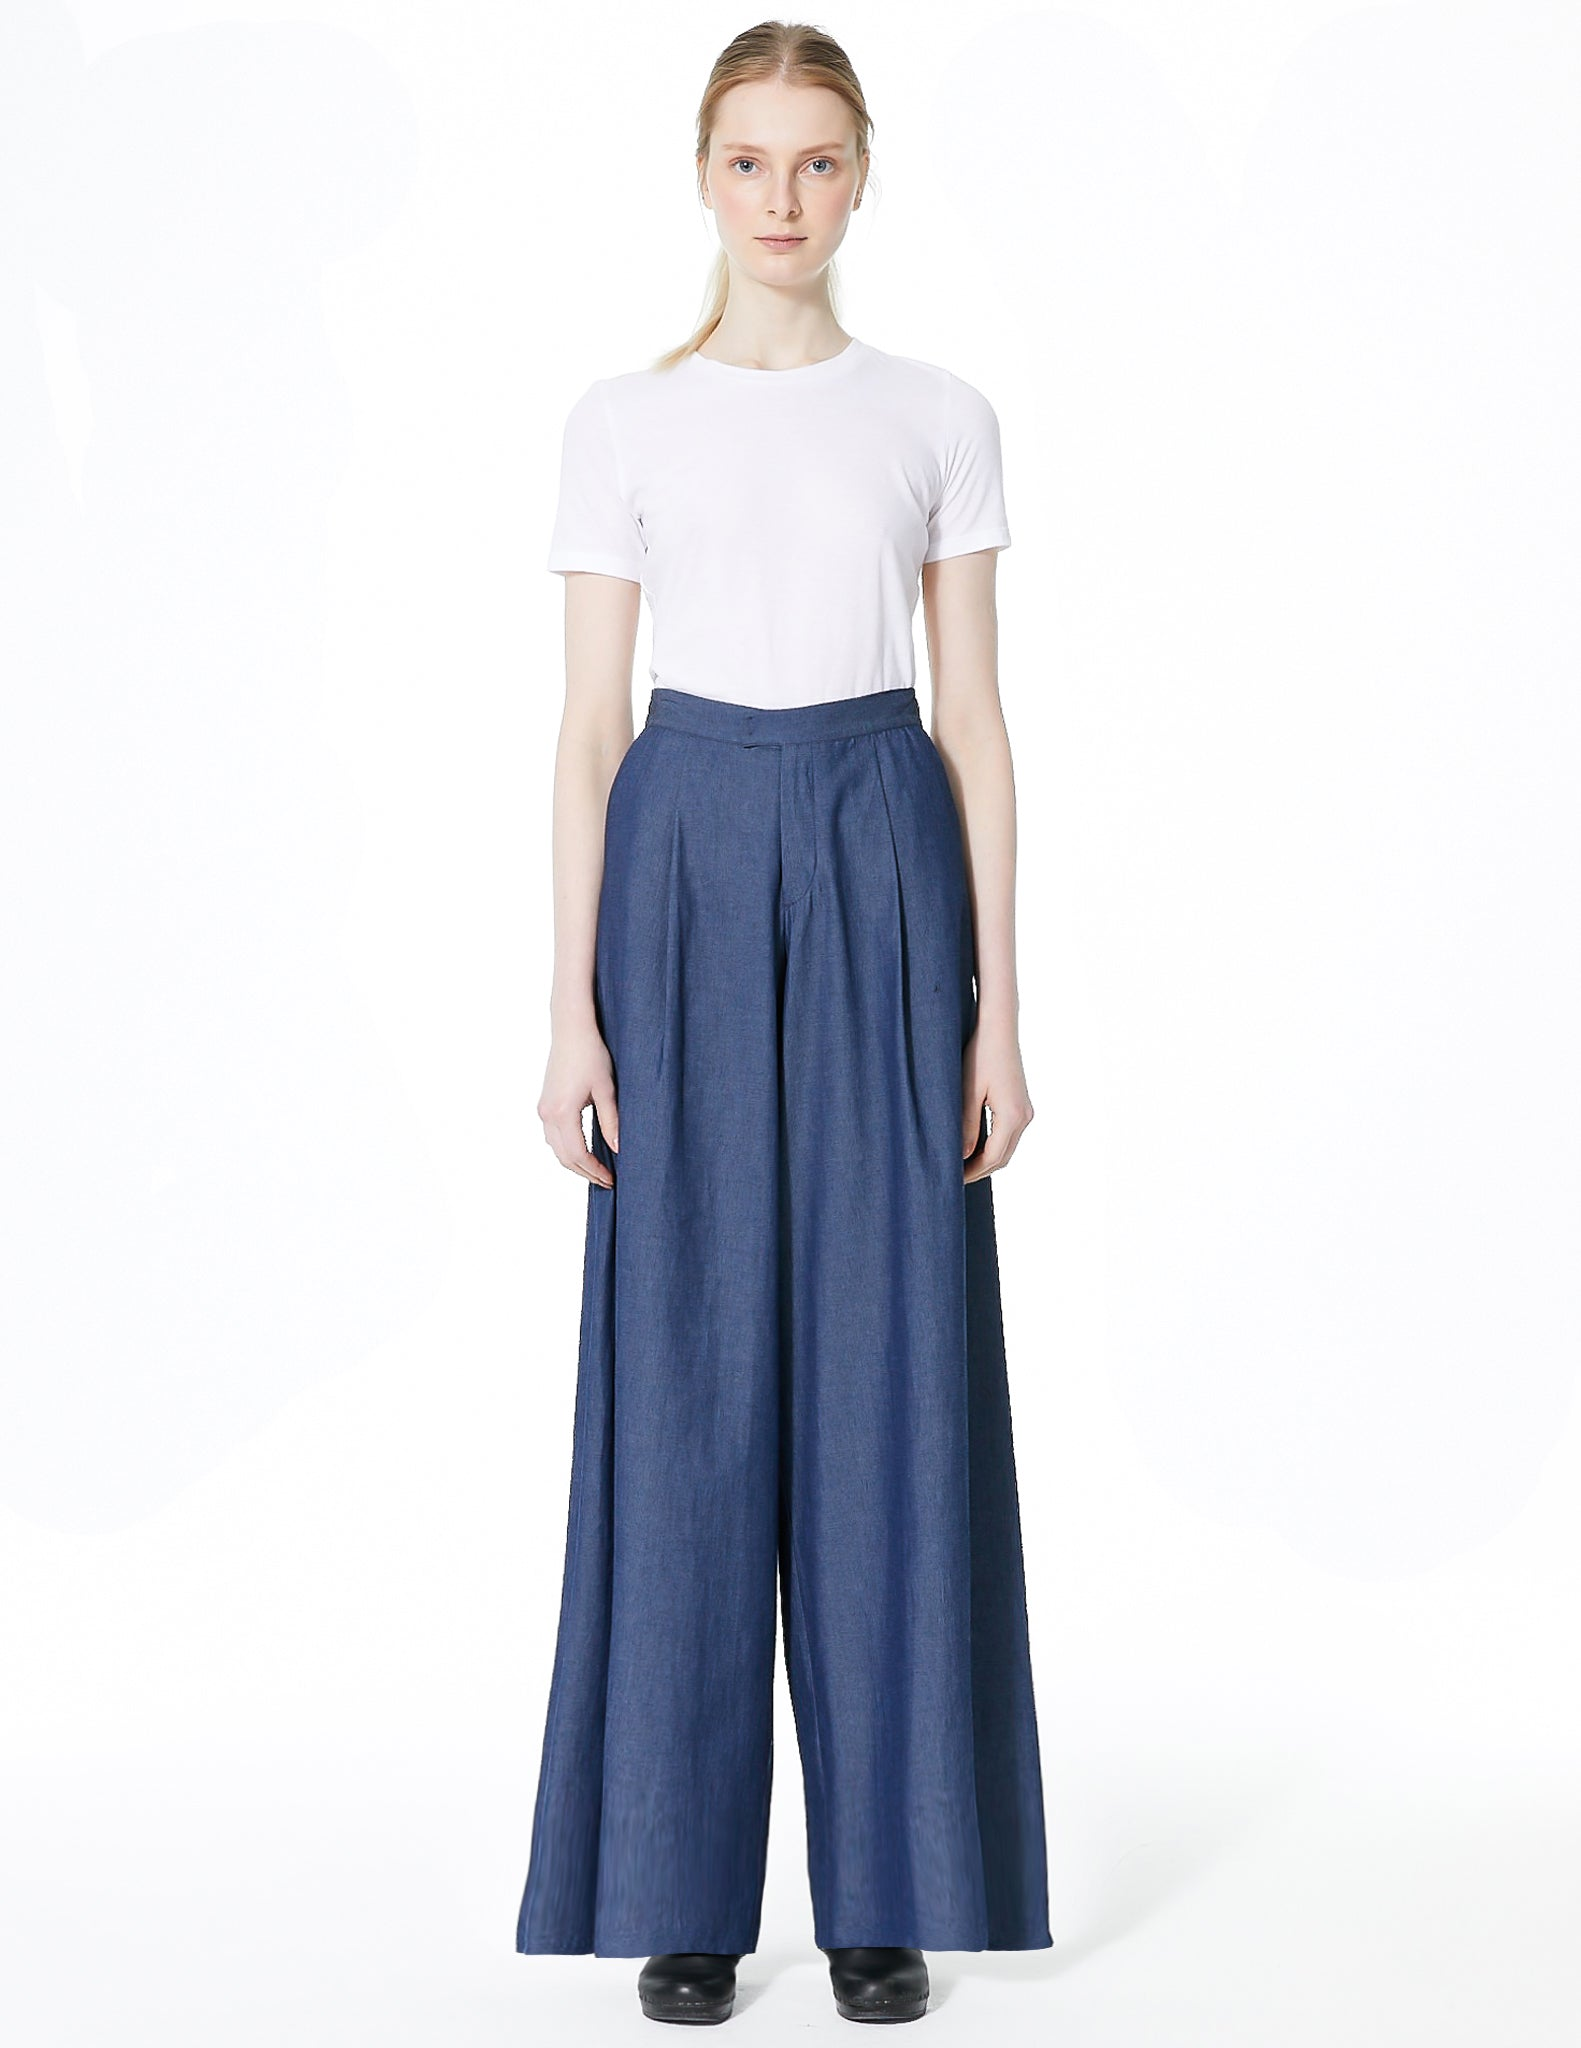 wide leg denim pant. made in new york city.